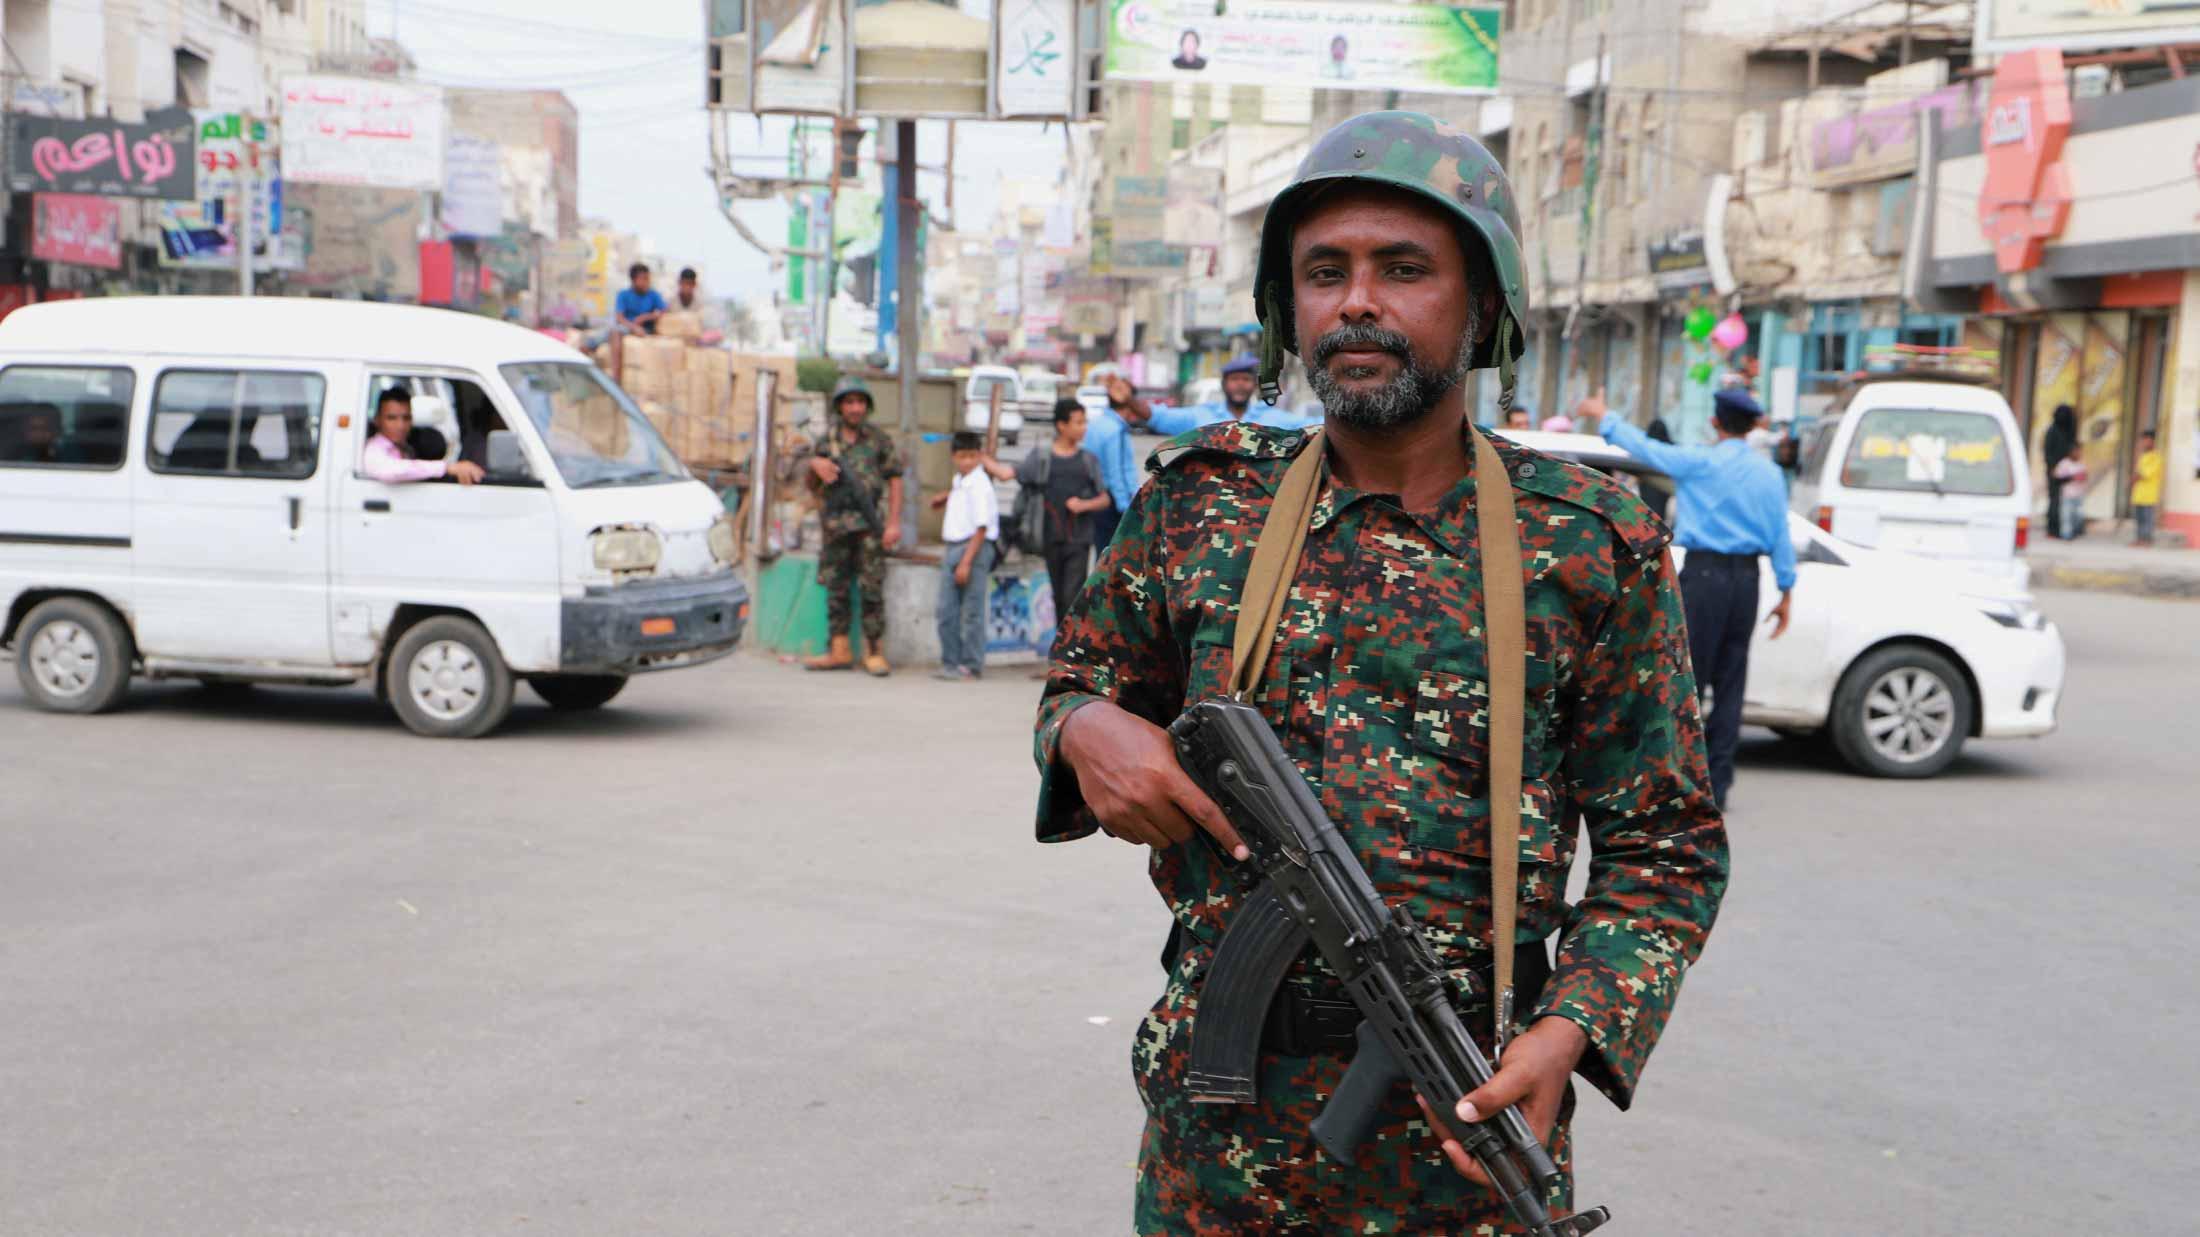 A troop drawdown could happen in Hodeidah. What does this mean for Yemen?